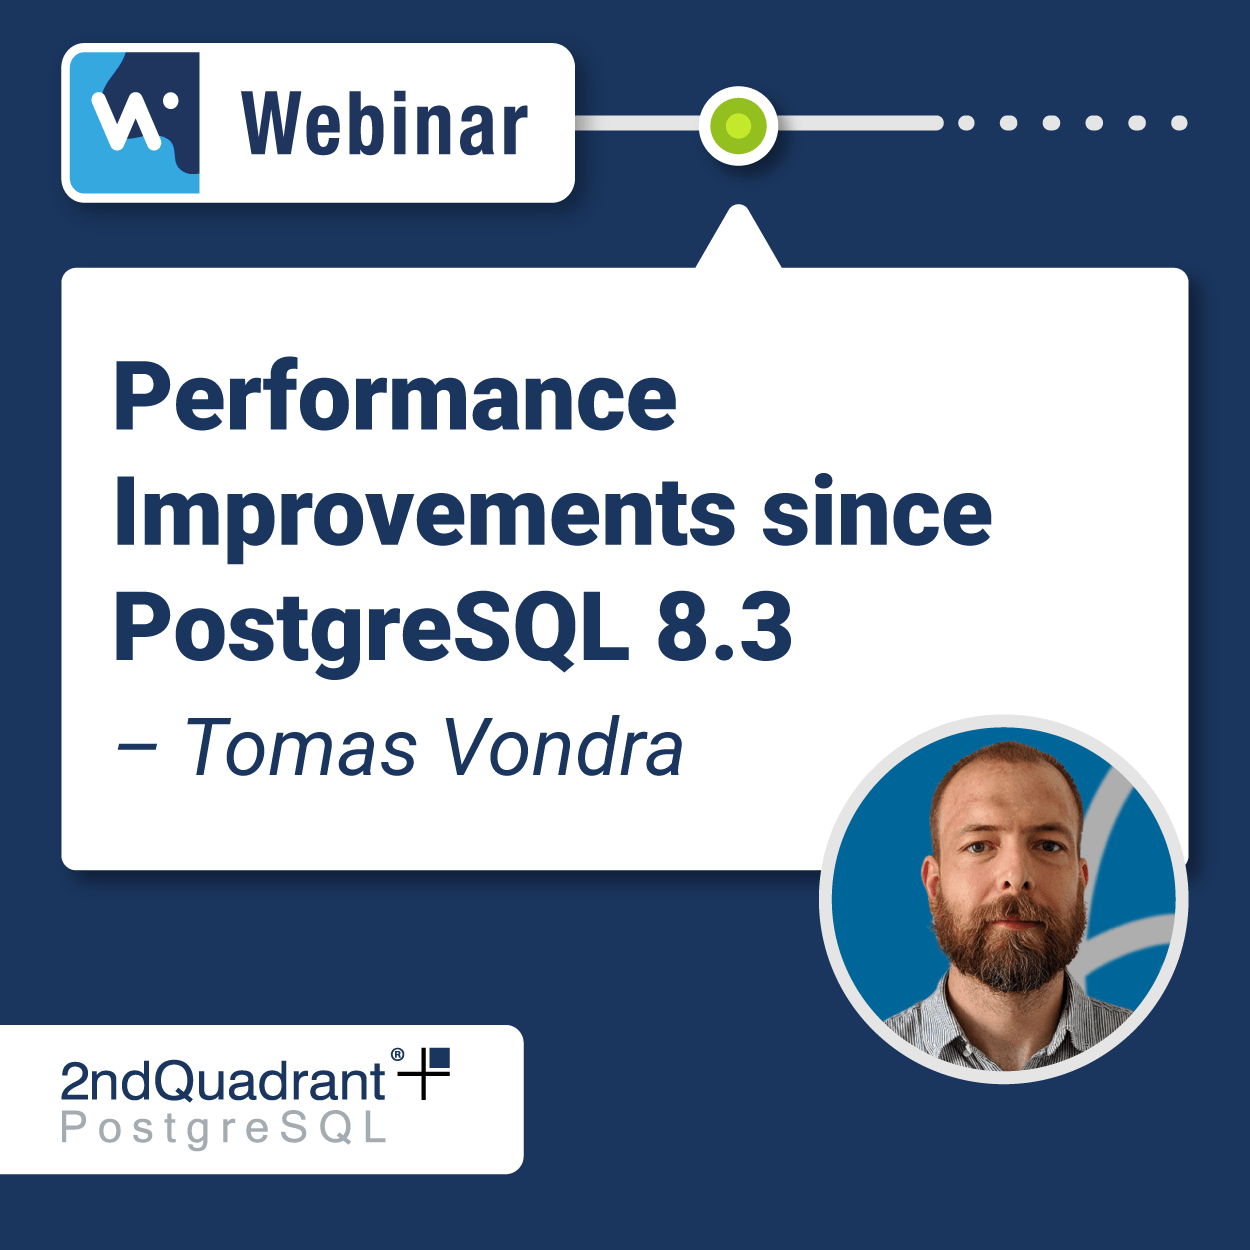 Performance Improvements since PostgreSQL 8.3